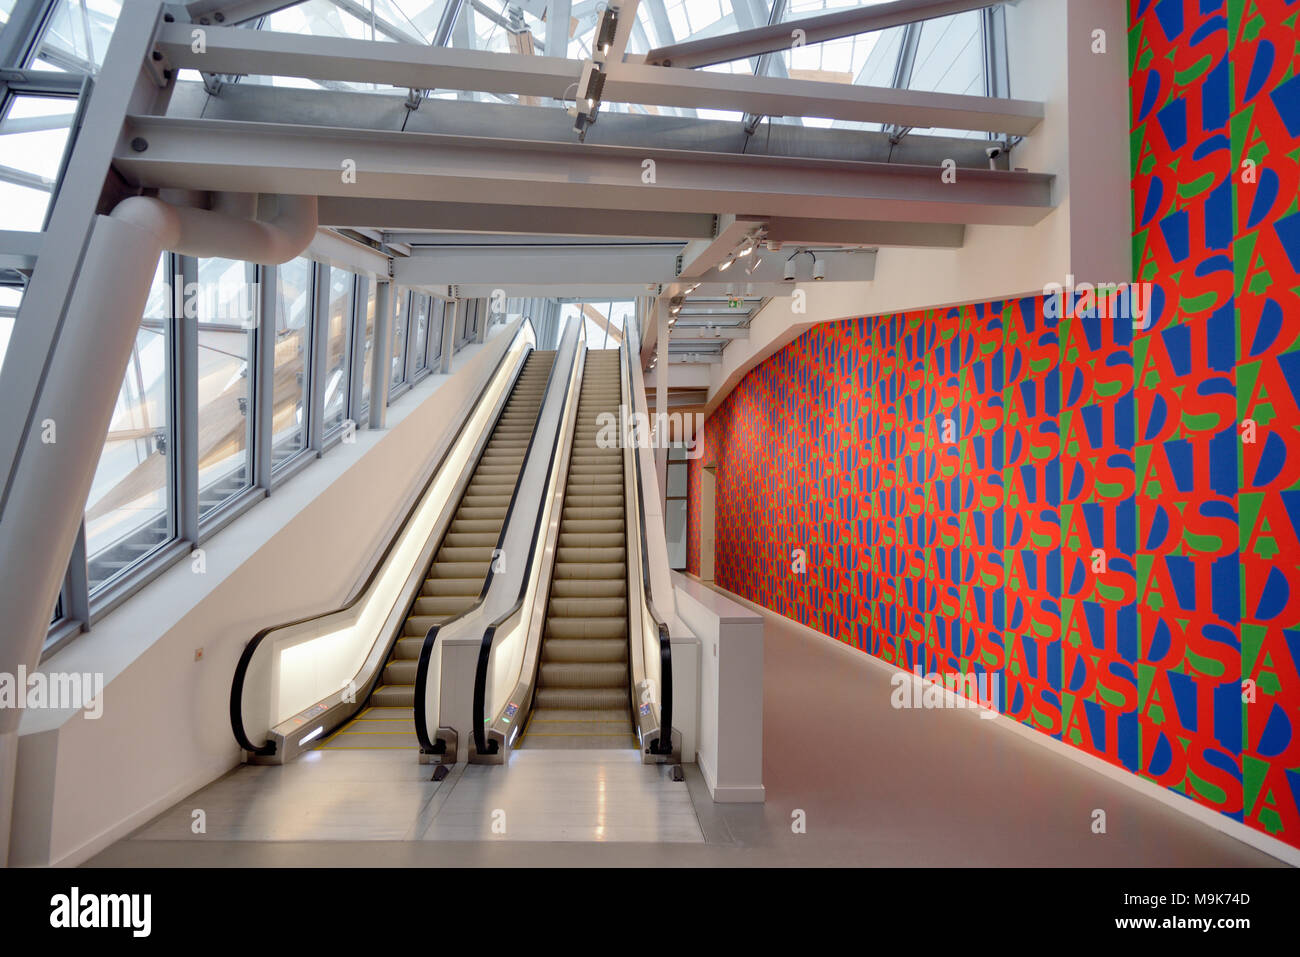 Escalators & Aids Wallpaper in Corridor of the Louis Vuitton Foundation Art Museum & Cultural Centre (2006-14) designed by Frank Gehry, Paris, France - Stock Image